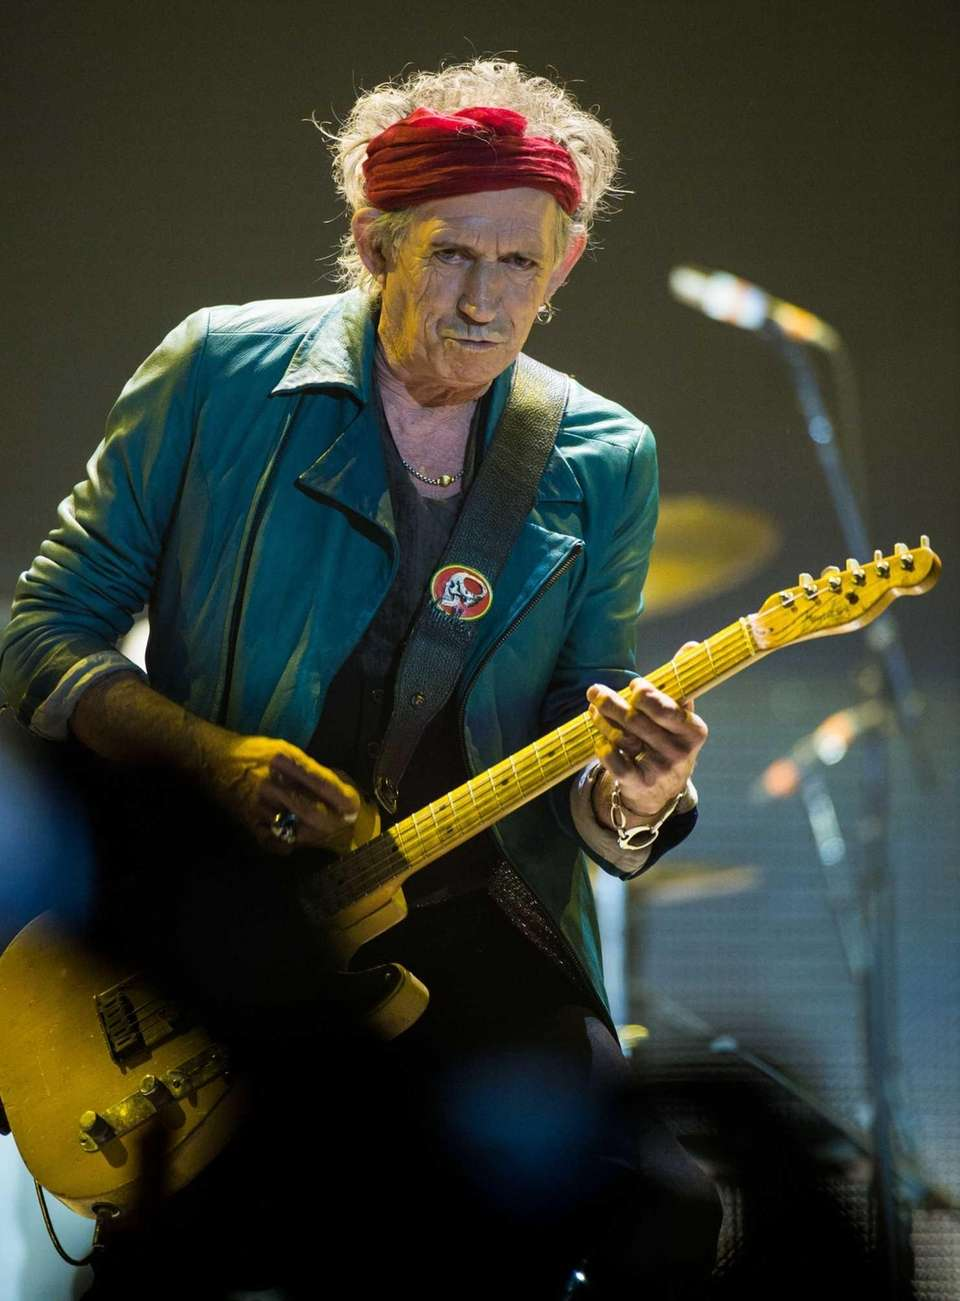 Keith Richards: In his 2010 autobiography, the former